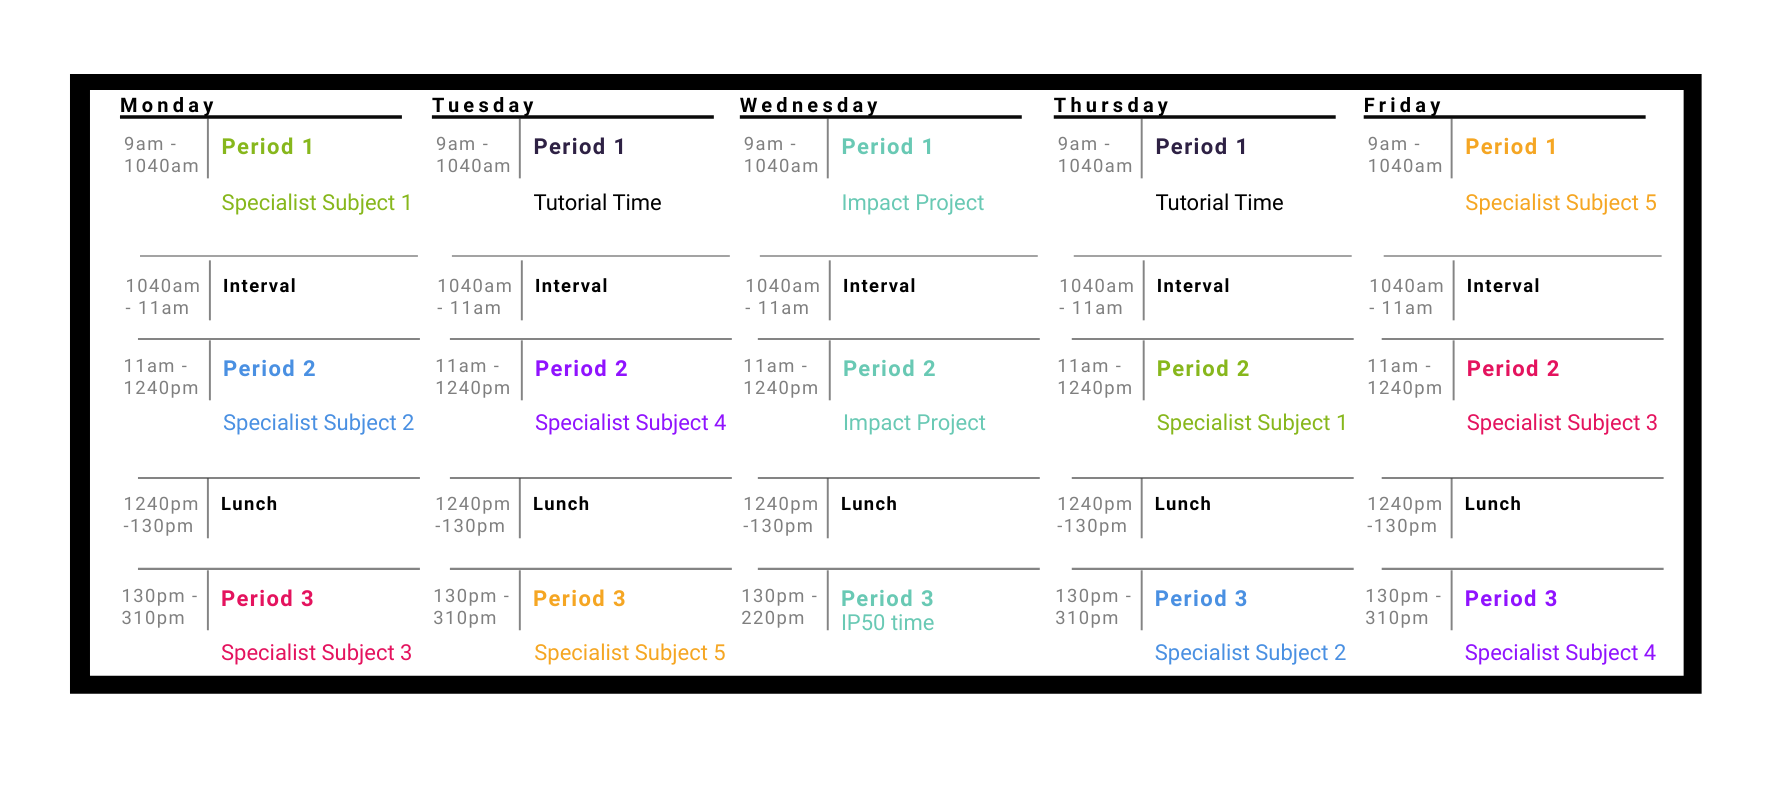 ASHS Daily timetable